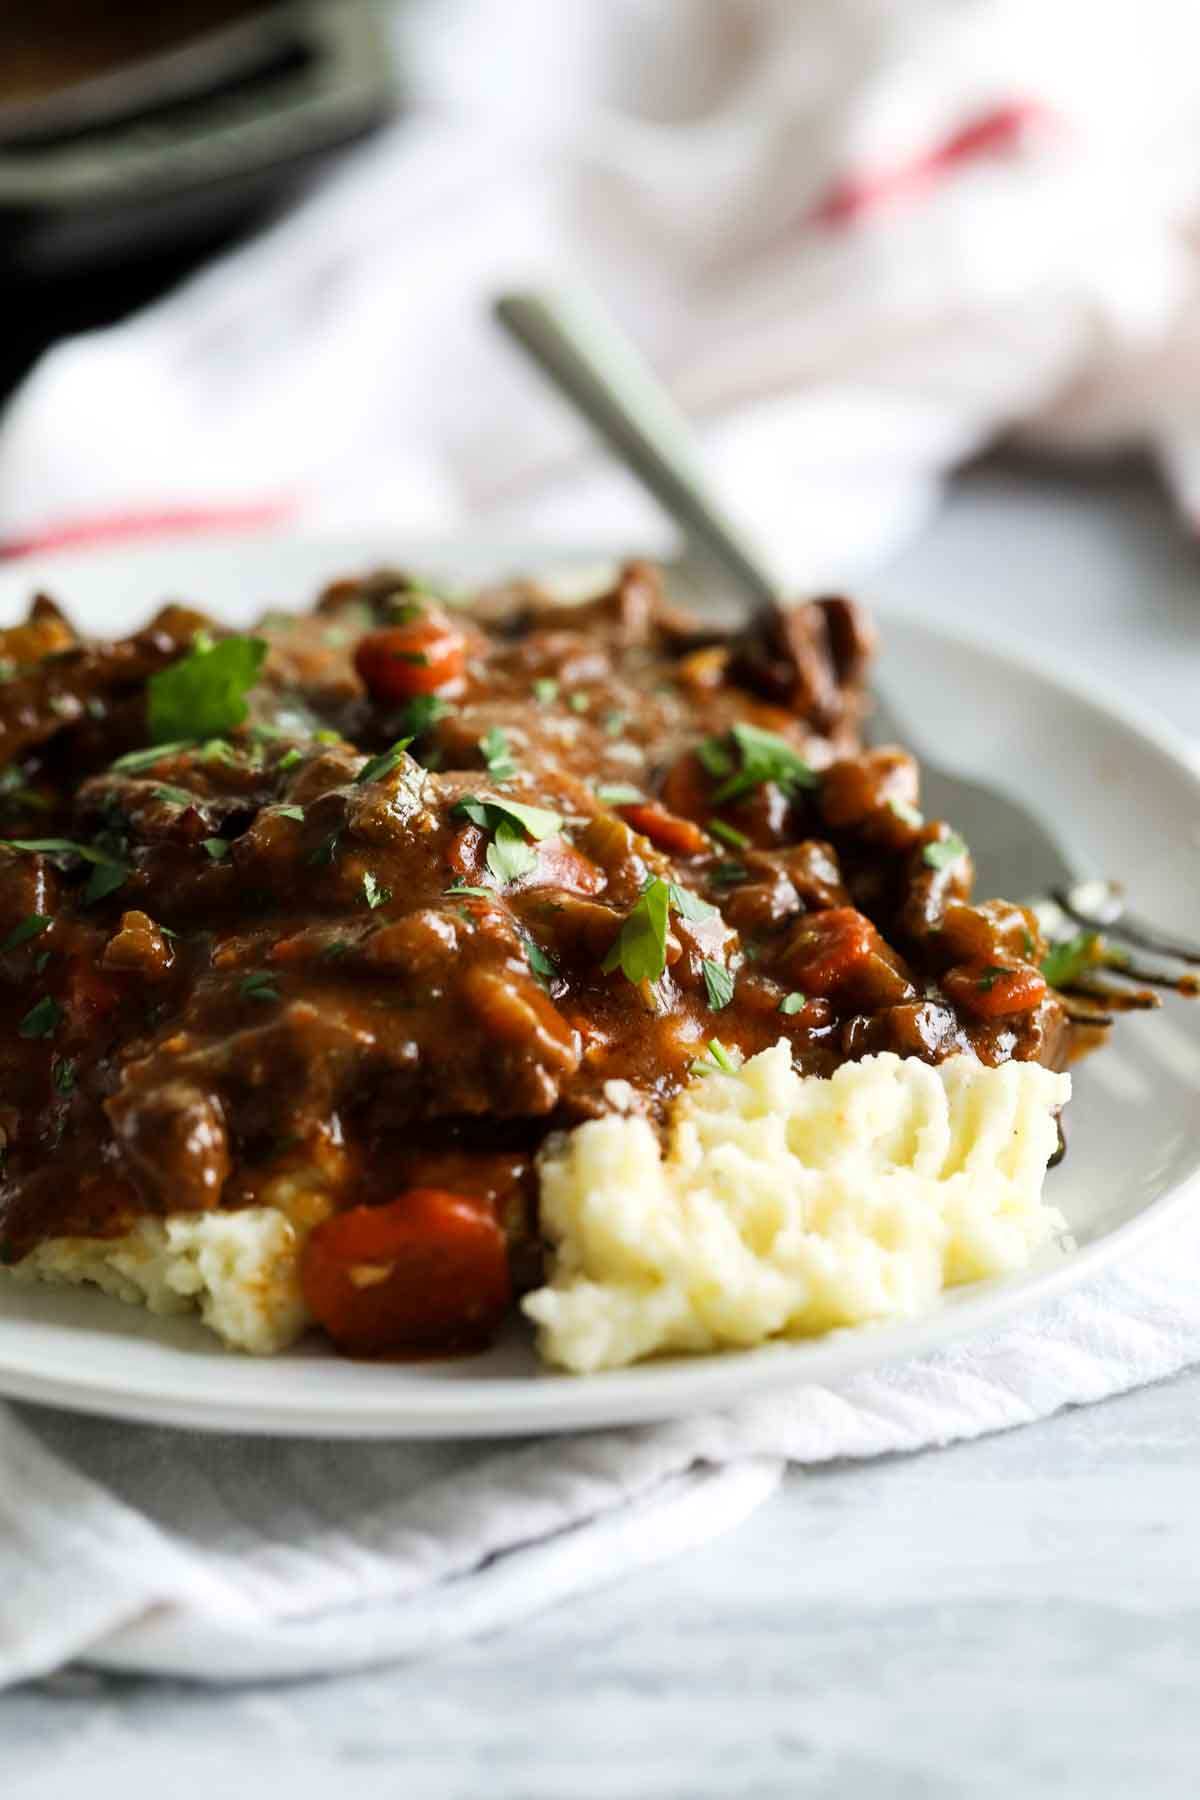 beef tips and gravy over mashed potatoes on a plate